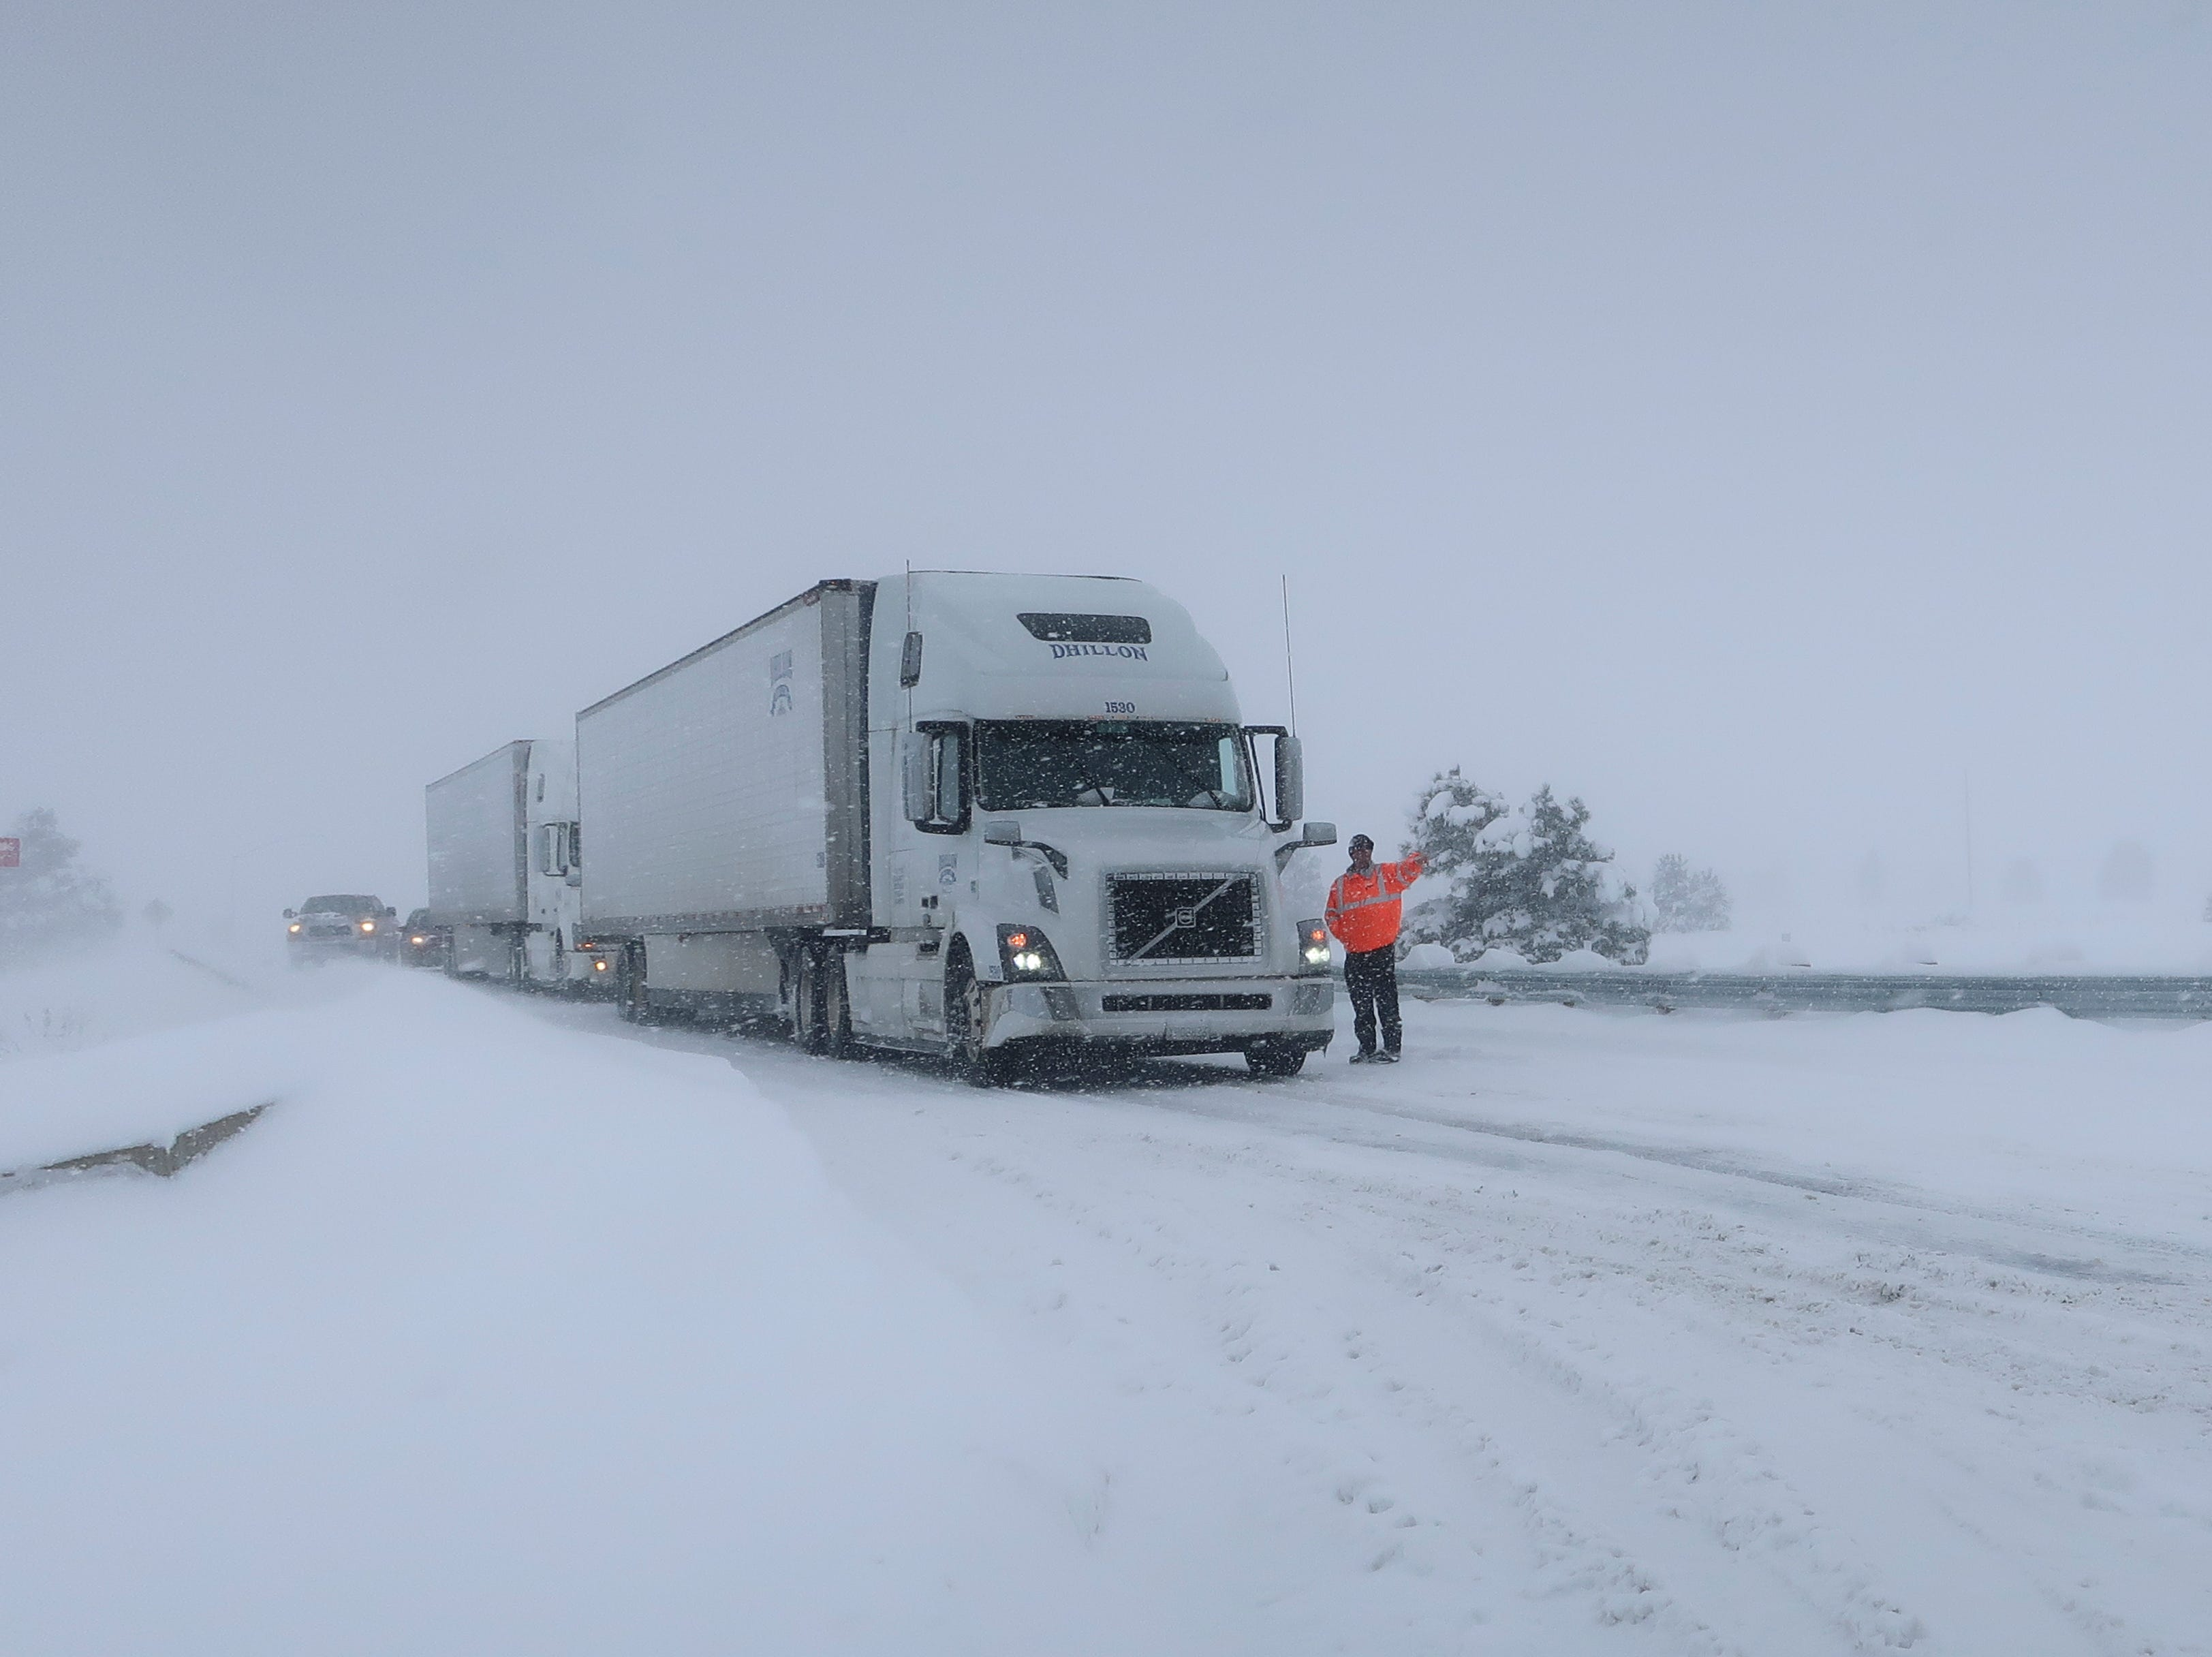 Frank Van Buren, the manager of a travel center, gives direction to semi-truck drivers who are pulling off Interstate 40 in Bellemont, Arizona, on Thursday, Feb. 21, 2019. Feb. 21, 2019. Schools across northern Arizona canceled classes and some government offices decided to close amid a winter storm that's expected to dump heavy snow in the region.